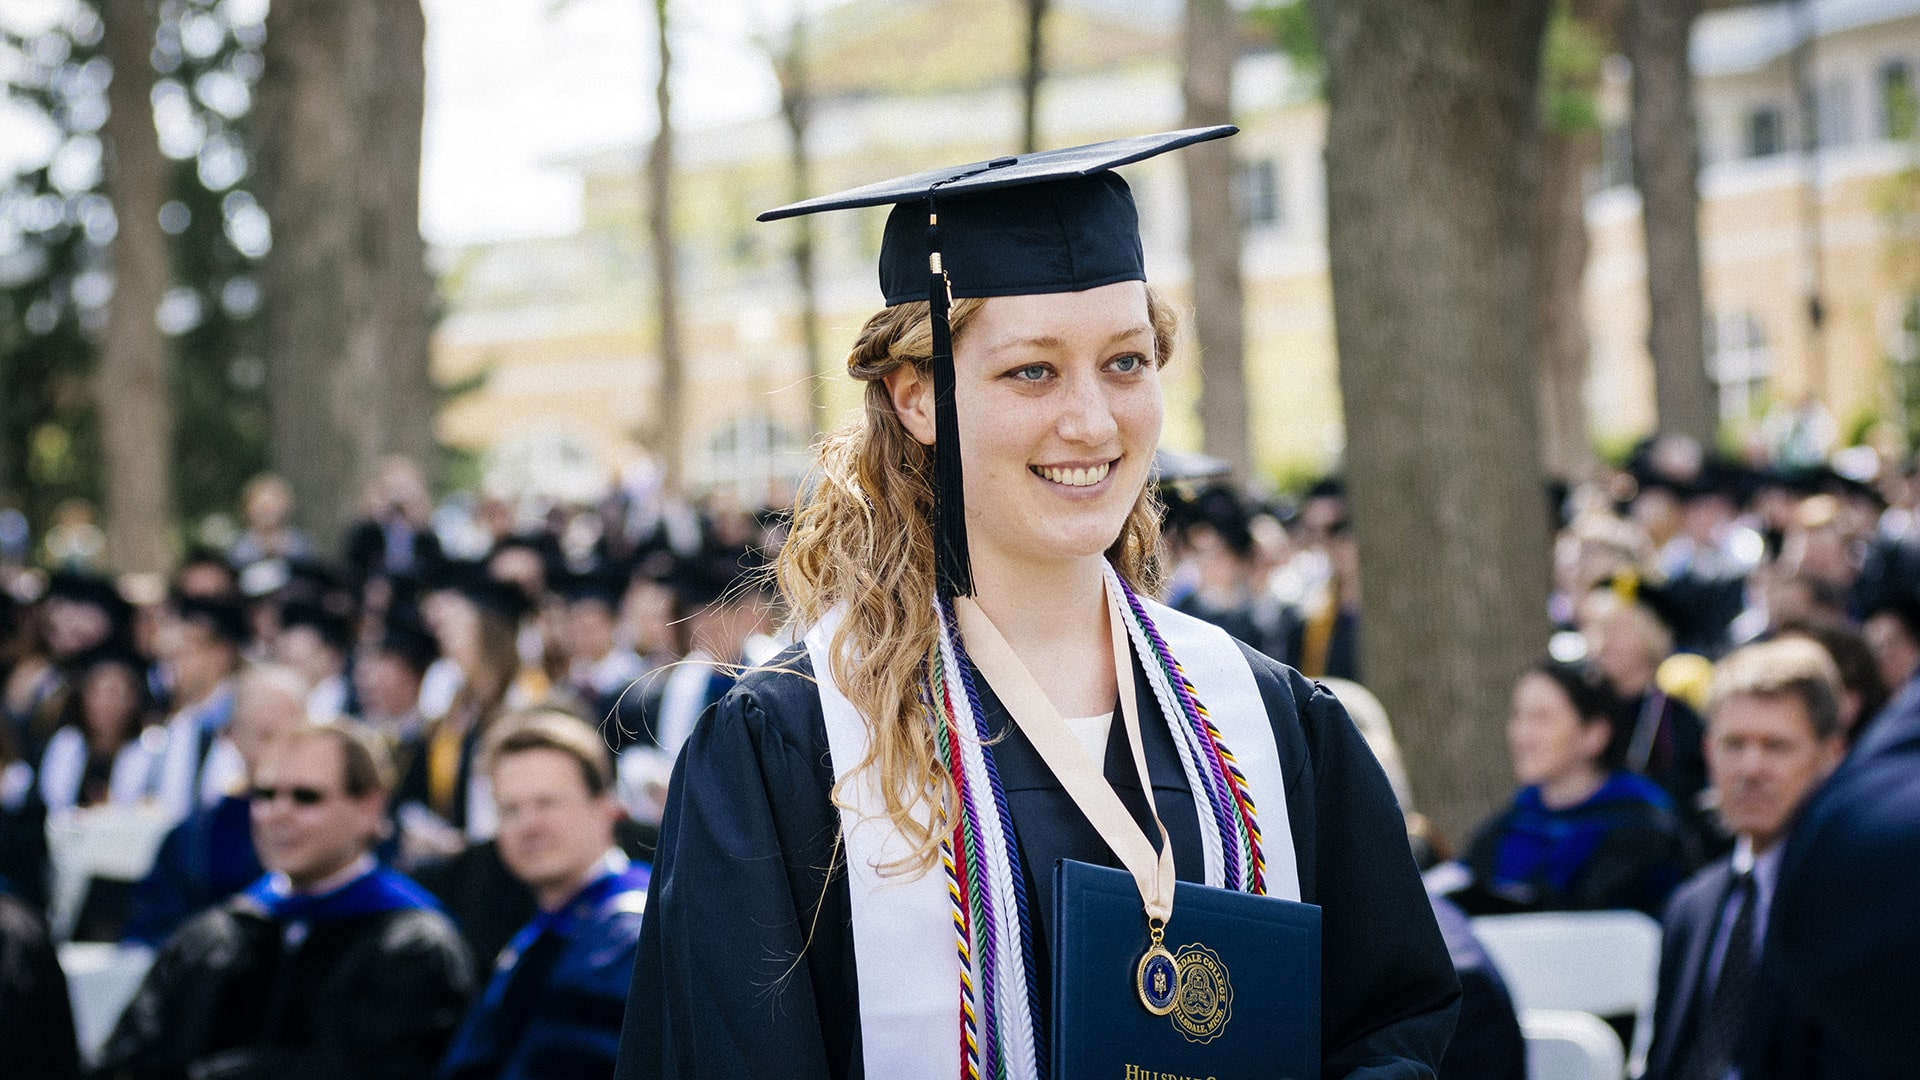 Ellen Roundey in cap and gown during graduation.